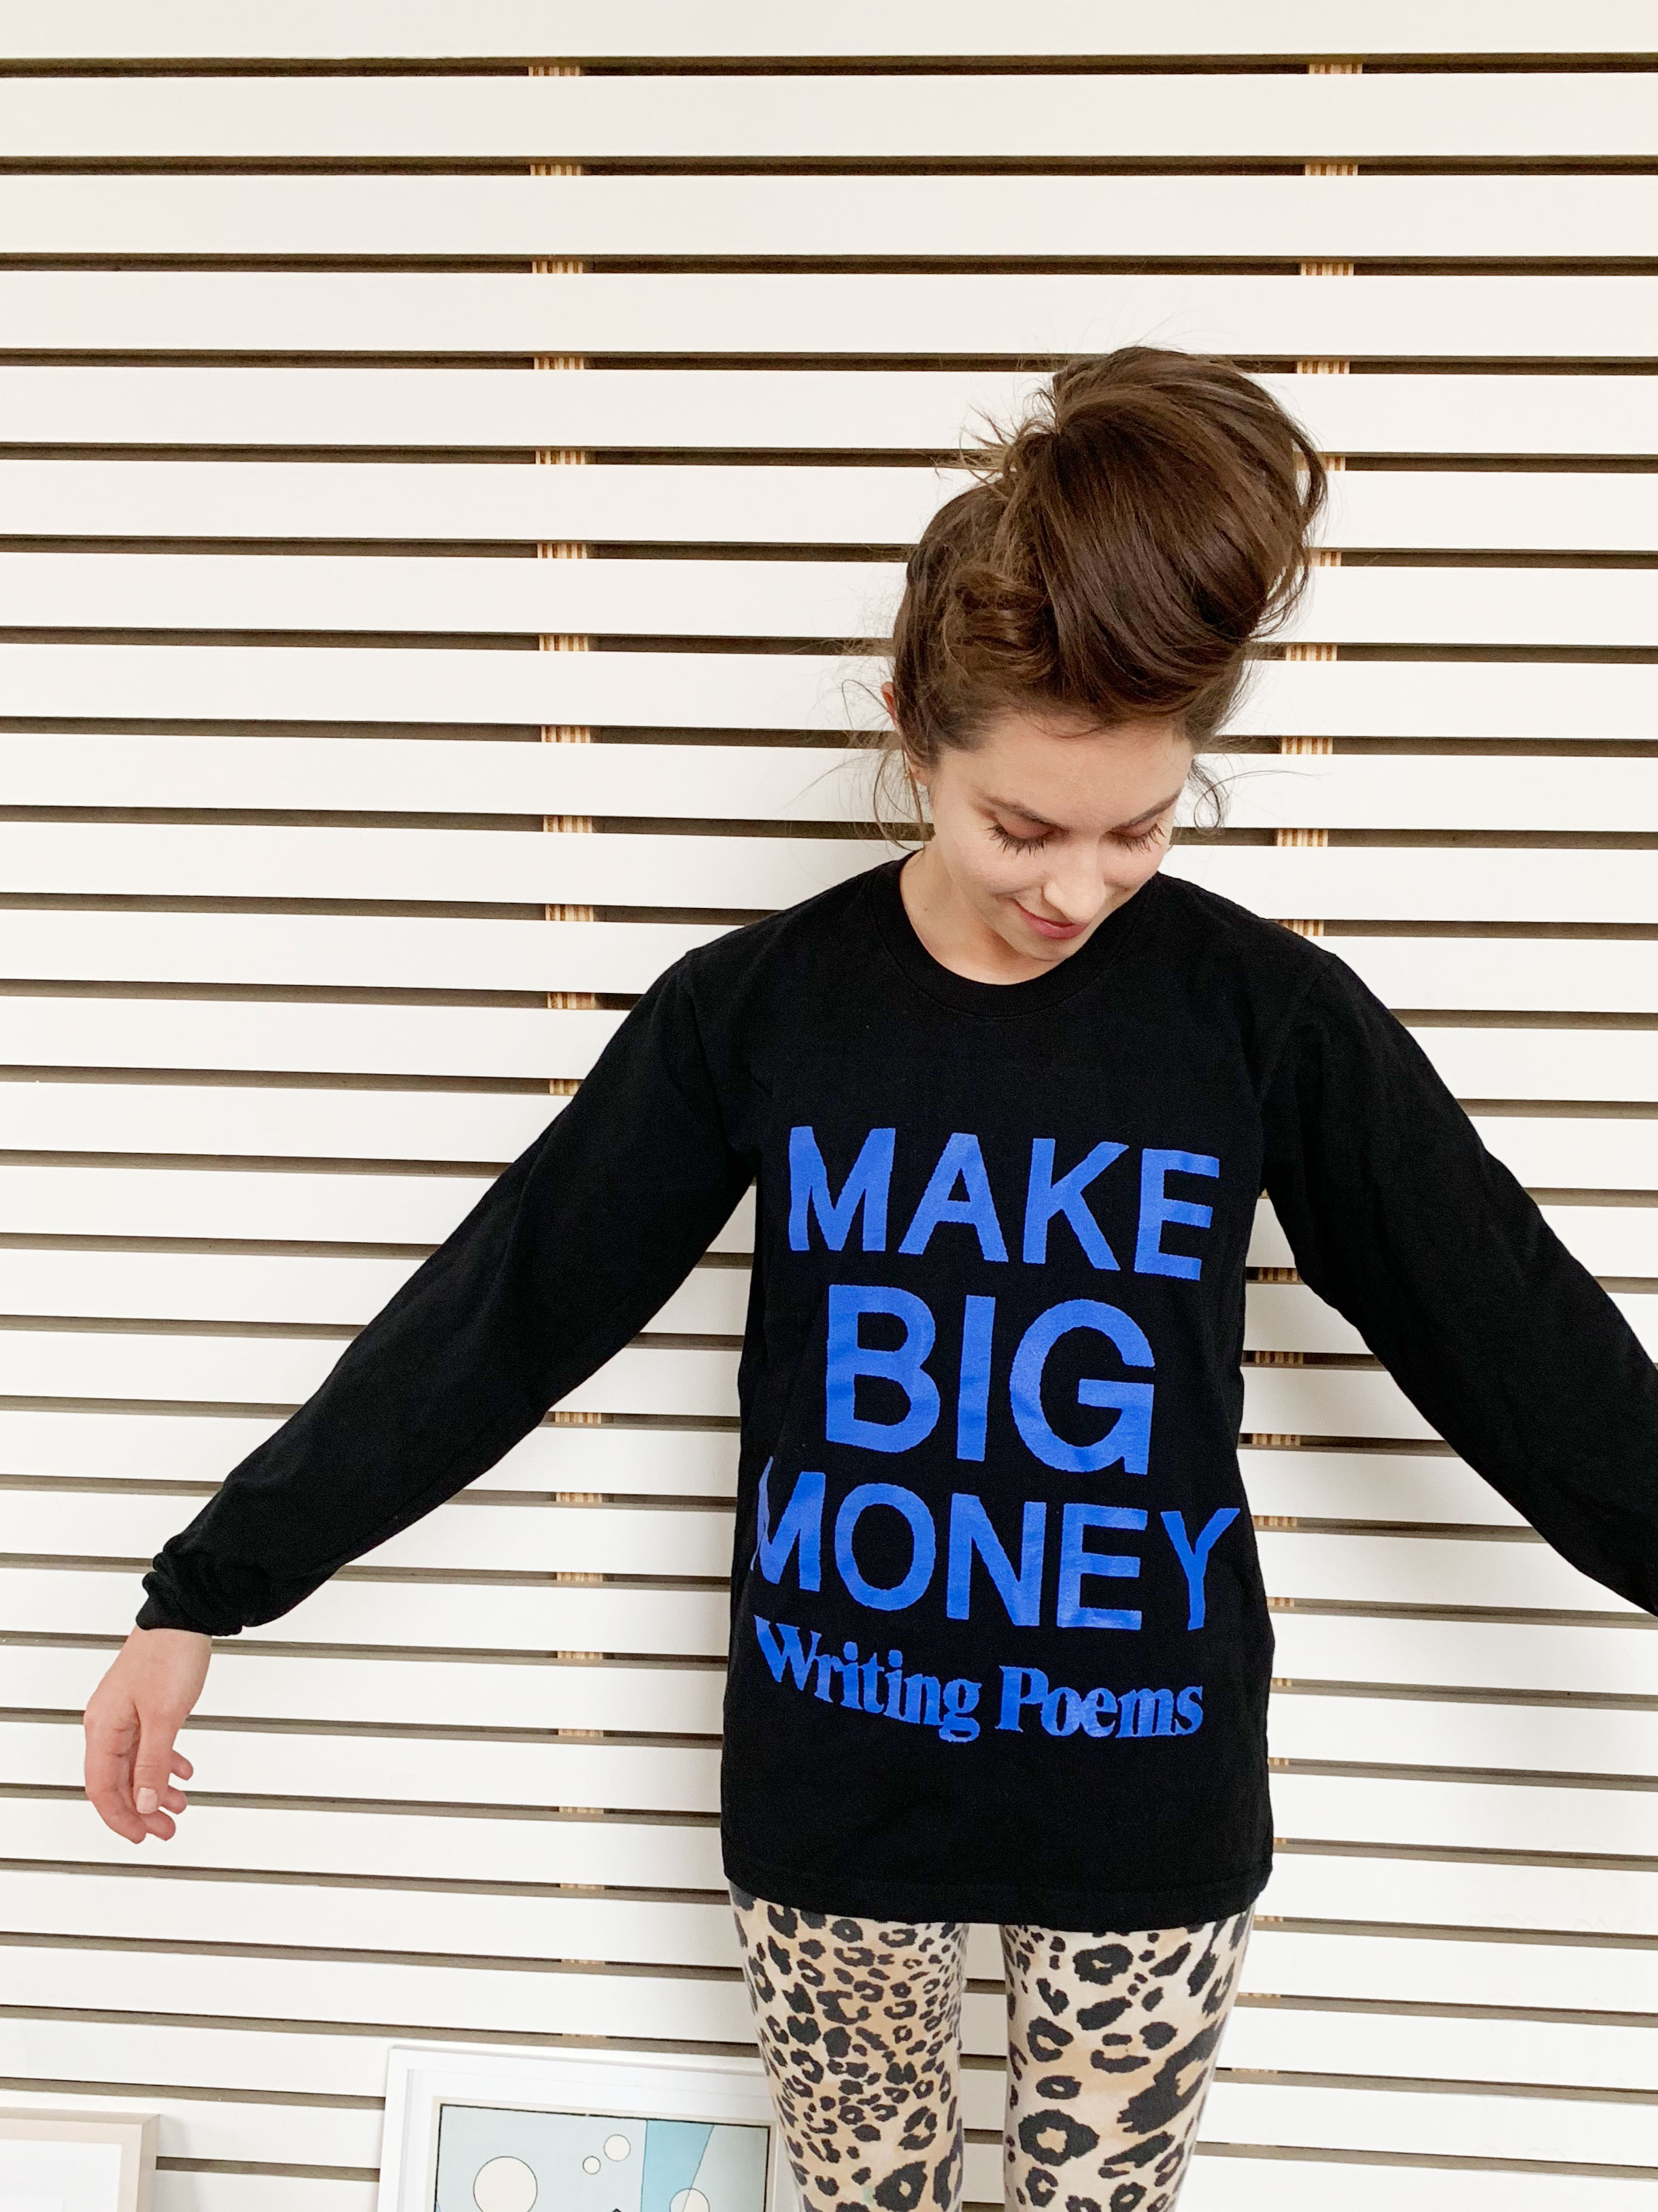 makebigmoney-molly-1.jpg